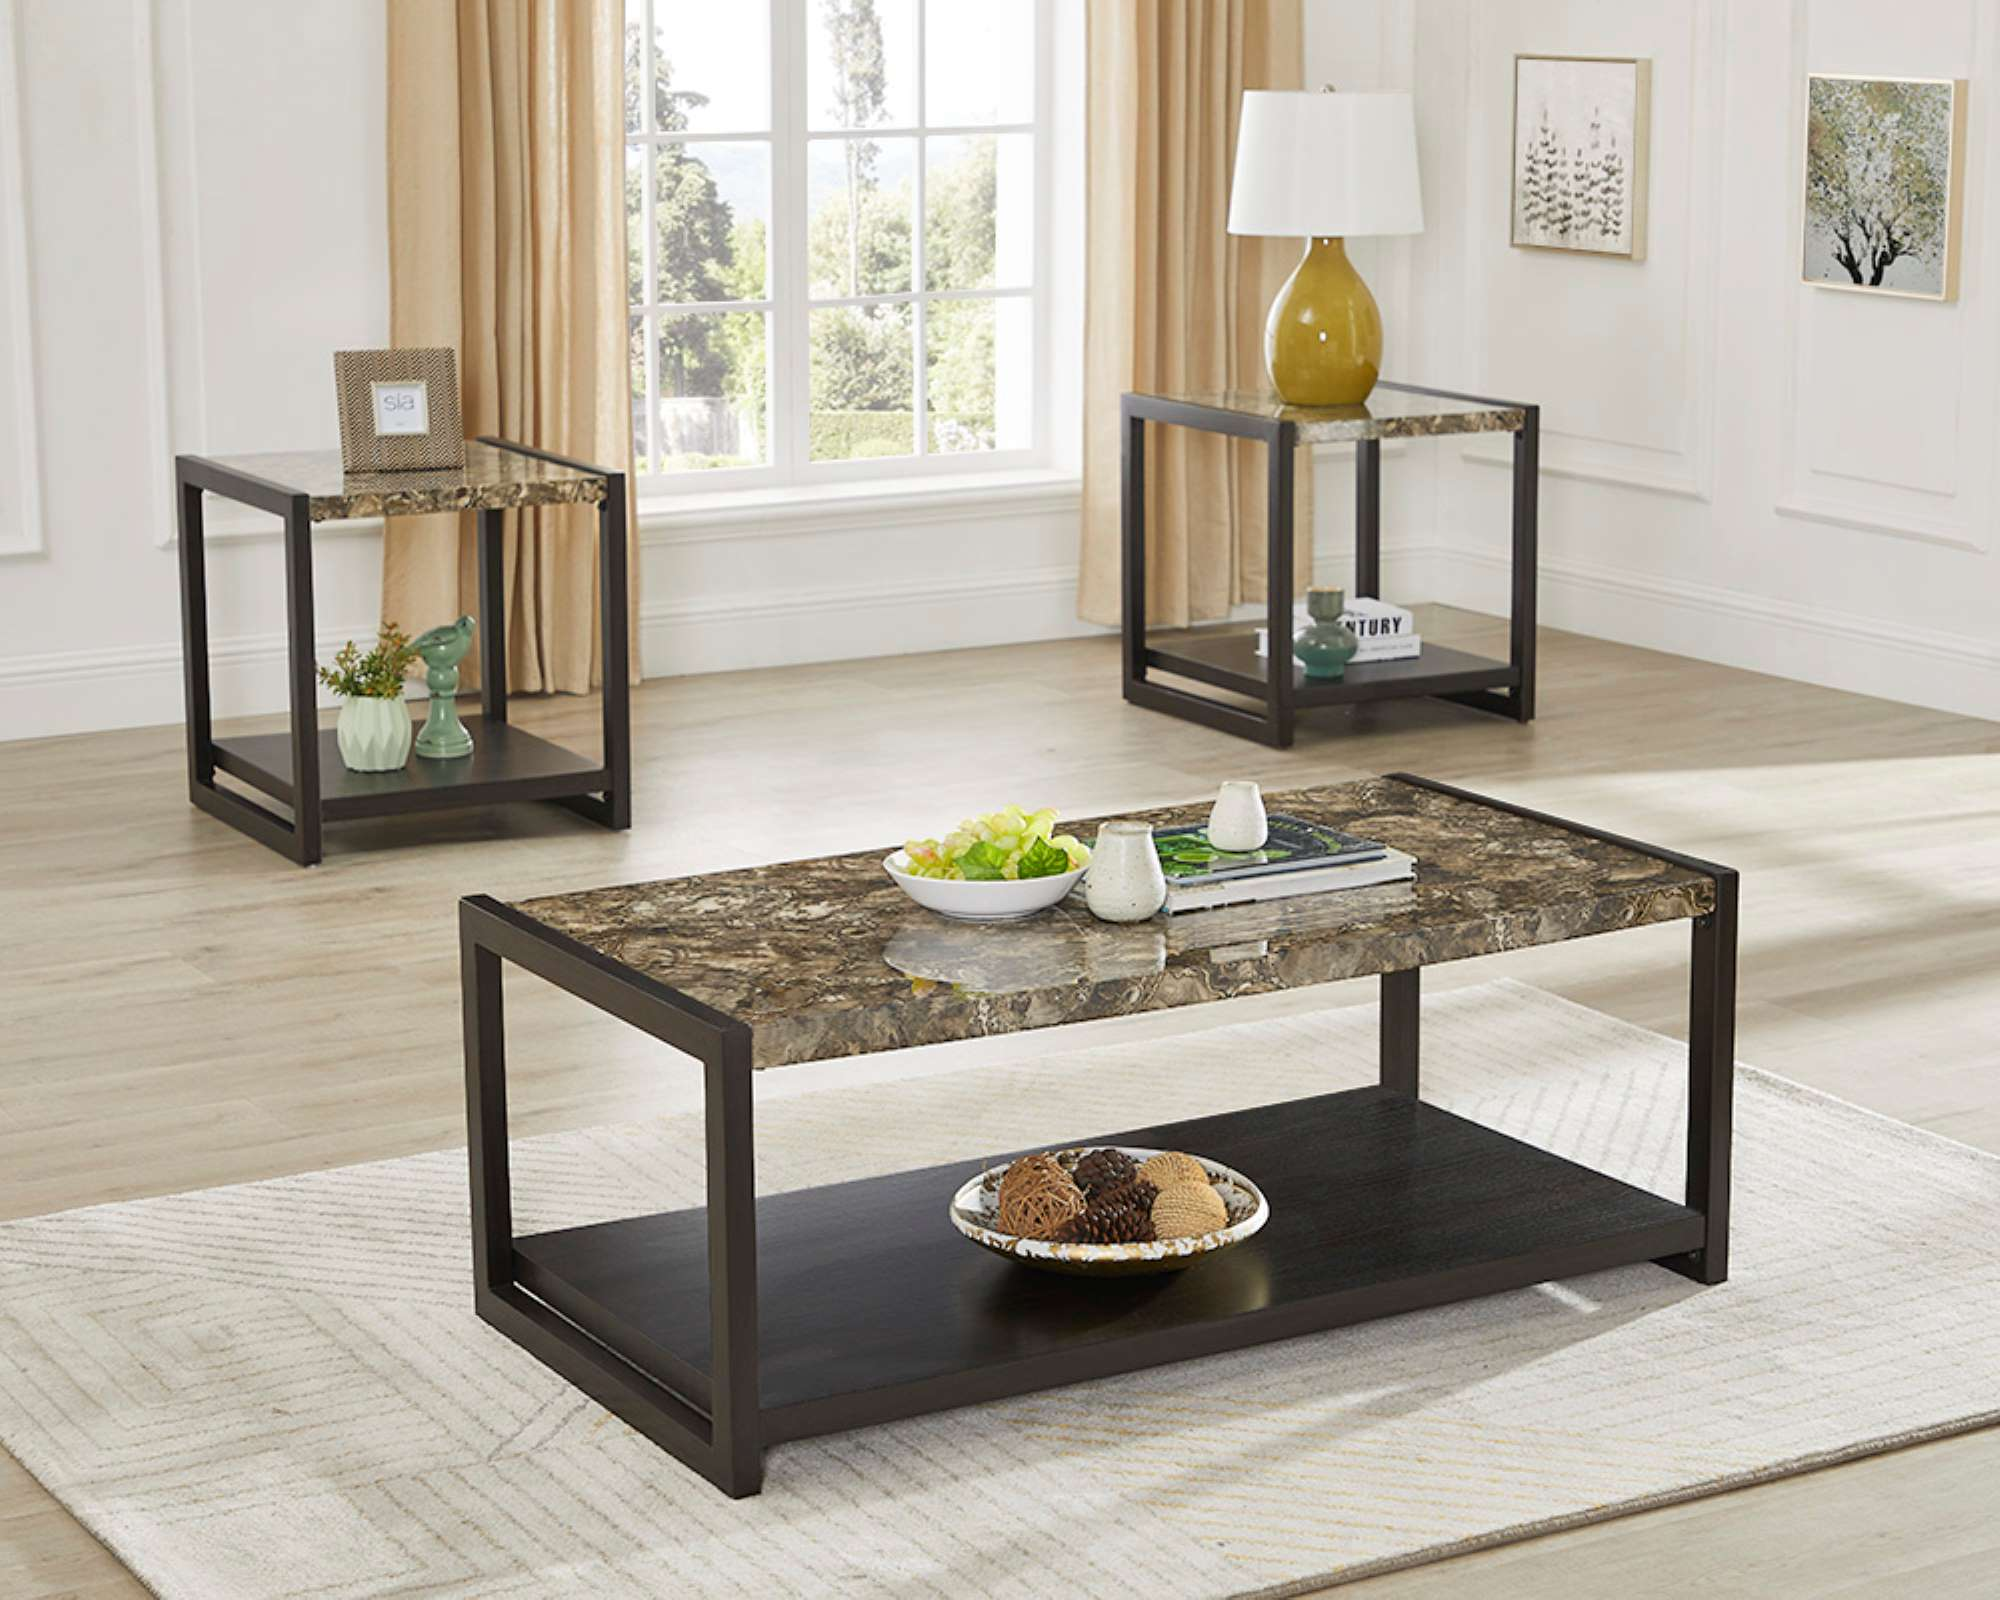 OT 4223 Table Set